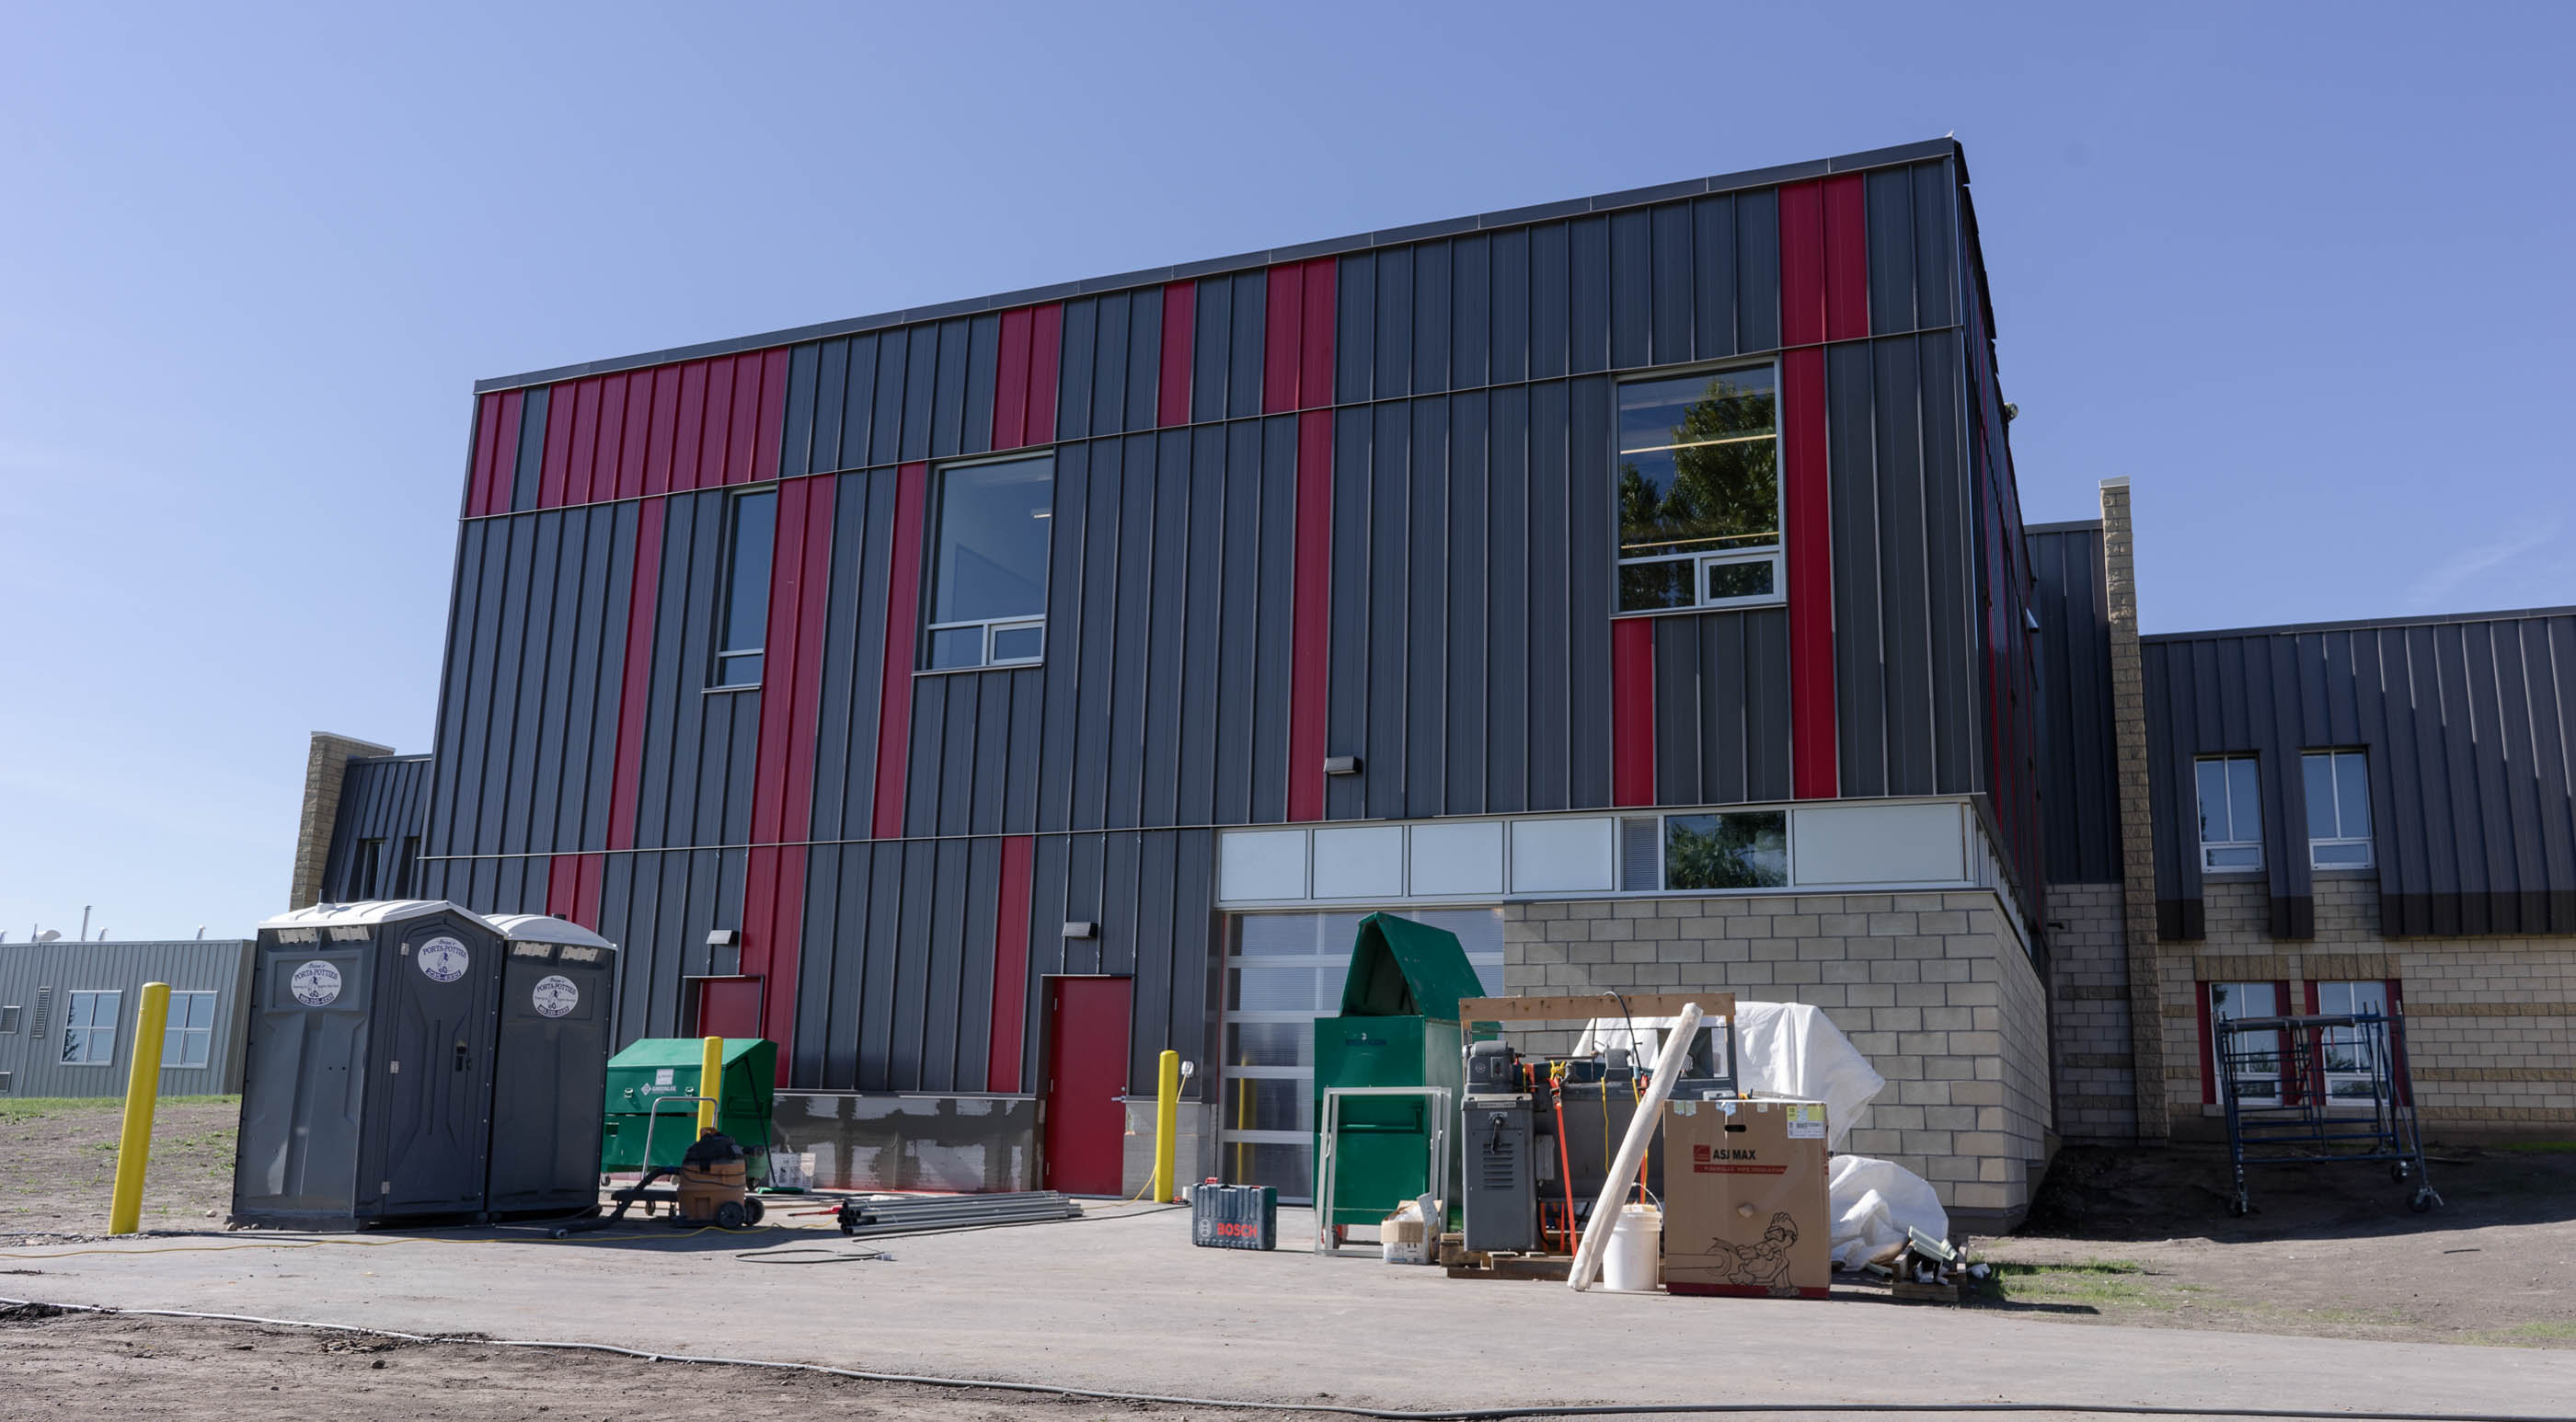 <h3>Ecole Ste. Marguerites</h3> <p>This project consisted of the addition of a new South wing that now houses an automotive shop, beauty salon, and recreation area for the students. A highlight of this project was our team's collaboration with the masonry team on-site to ensure that scaffolding, heating & hoarding, and cleanup were efficiently coordinated so the block walls could be completed during the cold winter months.</p>